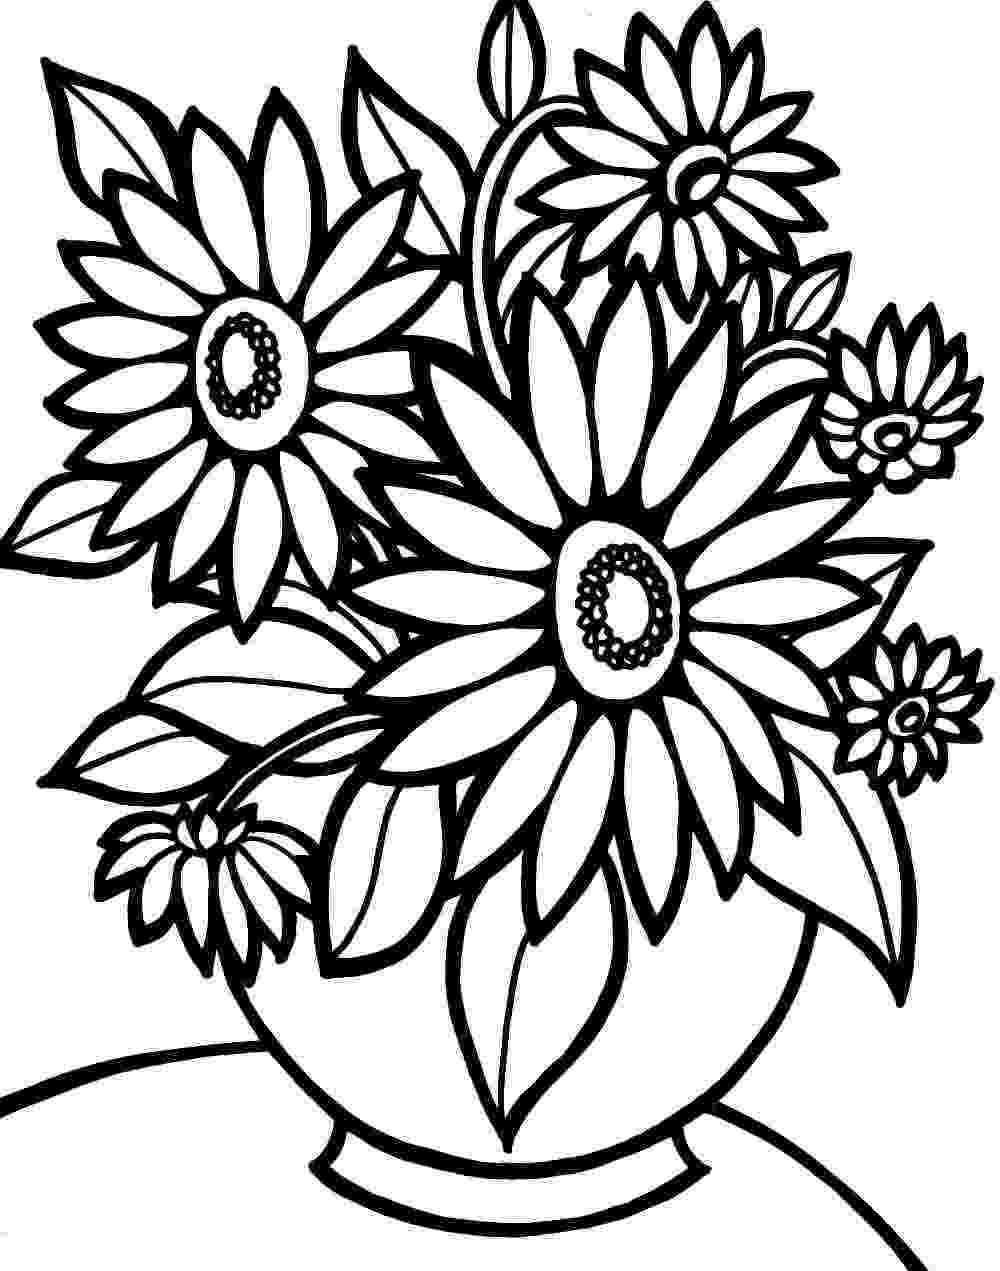 flower colouring pages to print flower page printable coloring sheets page flowers colouring print flower pages to